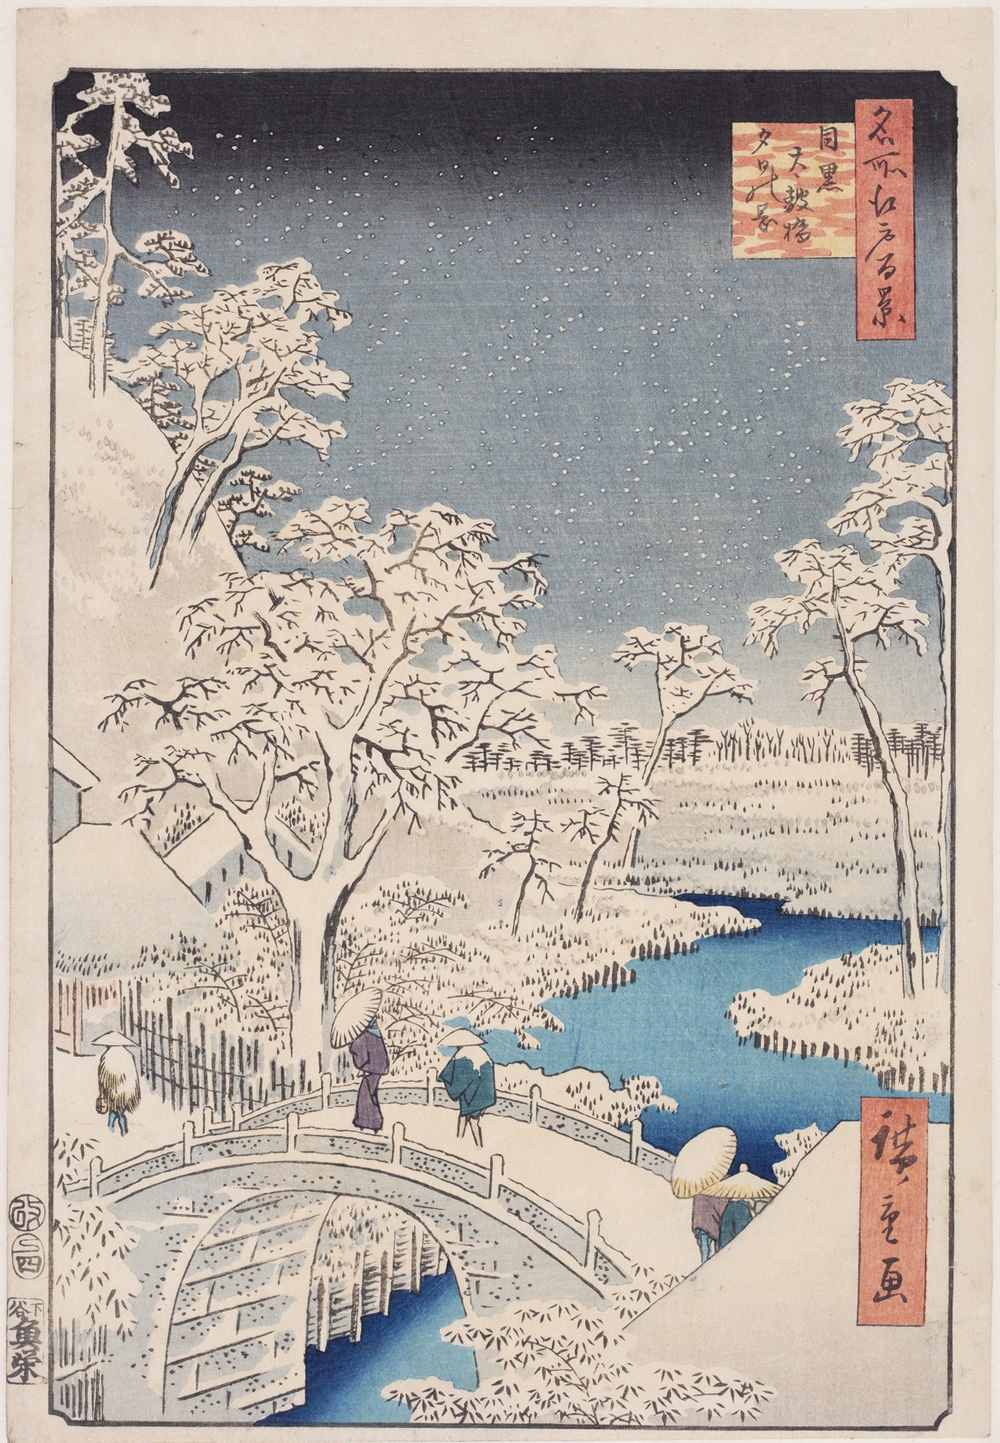 Japanese print of a snowy landscape, people dressed in traditional clothes cross the bridge to some buildings, a river weaves through the scene and snow ladened trees rise from the banks.